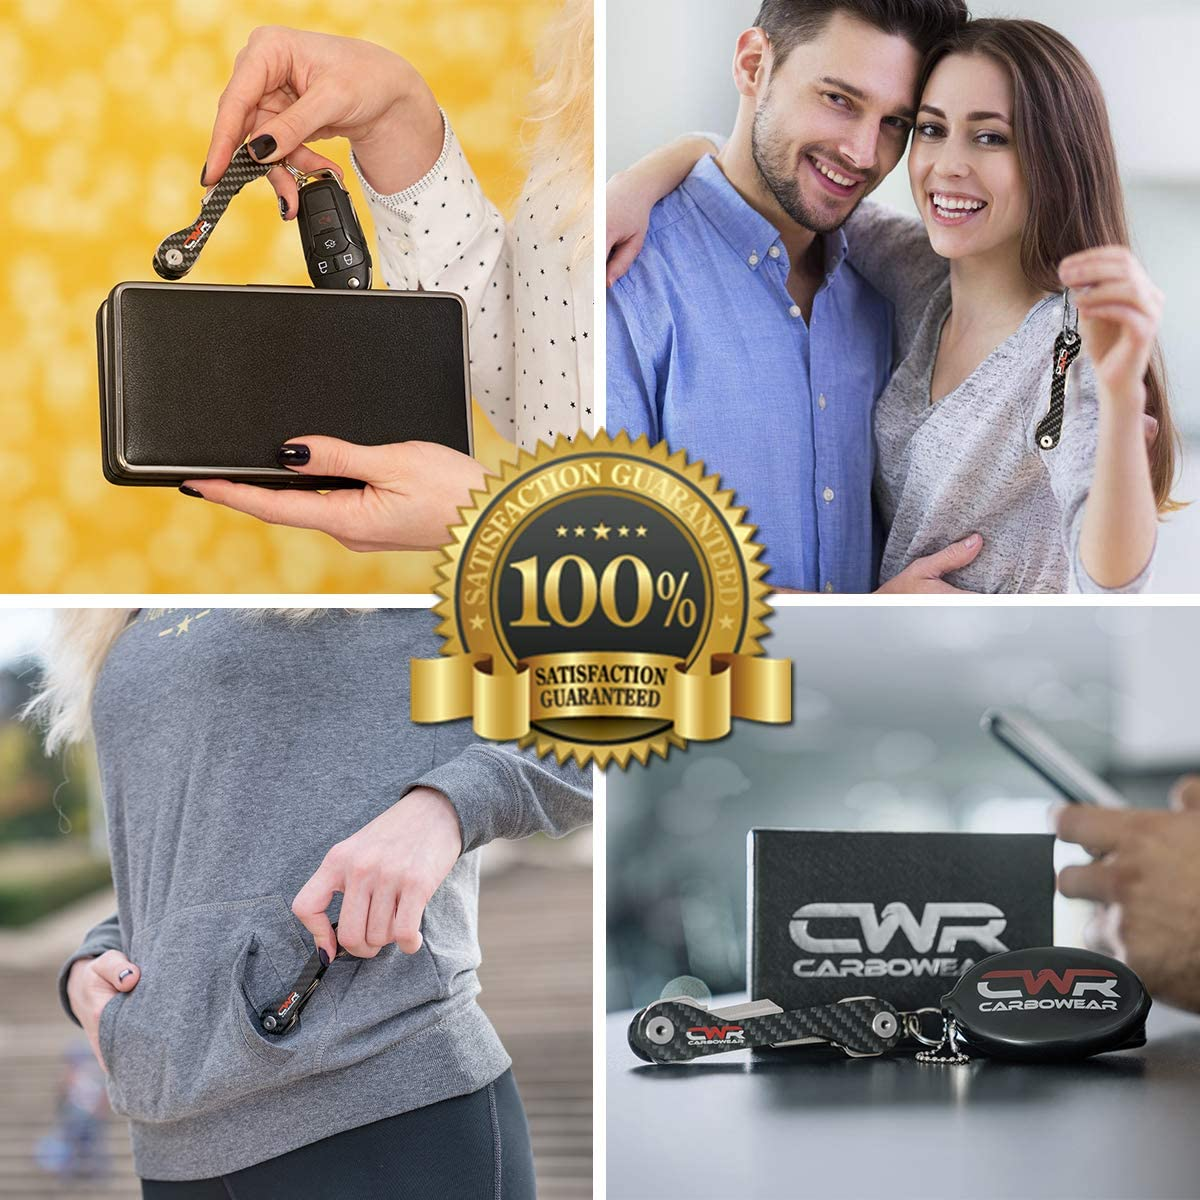 Carabiner Locks Black Mailbox SIM /& Bottle Opener Carbon Fiber Key Organizer Keychain -Easy Assembly -with Fob Car Loop Compact Smart Key Holder Organizer -UP to 22 Keys for House Coin Holder